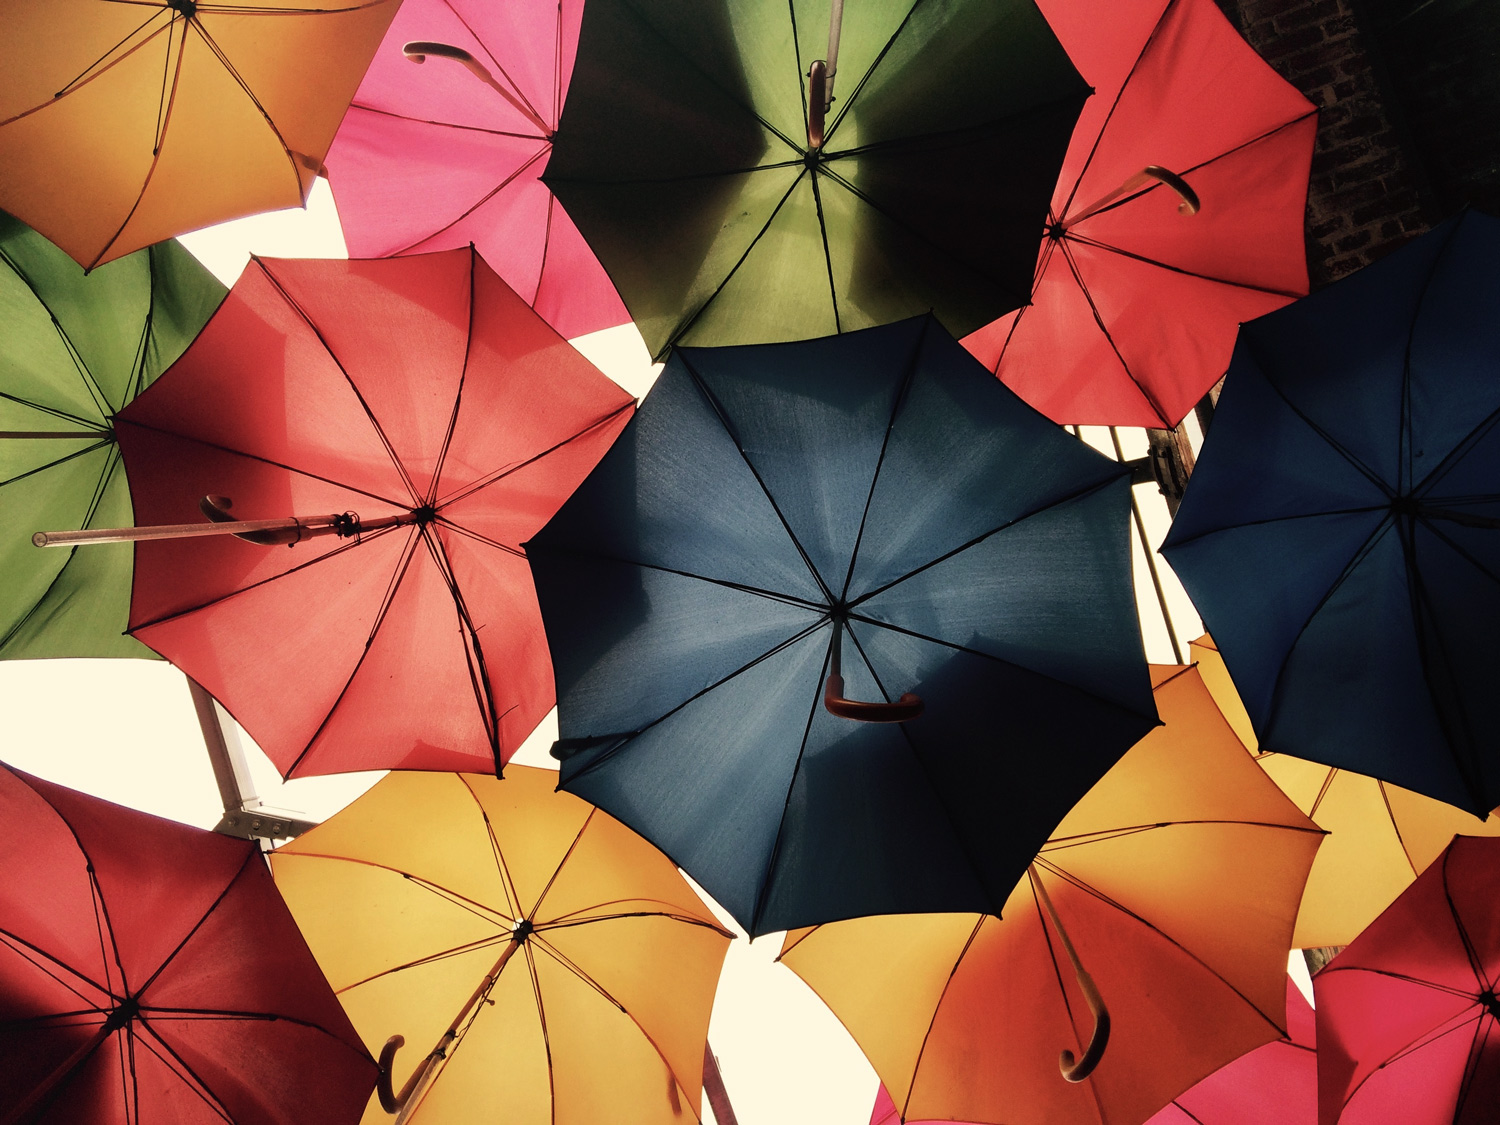 Colourful umbrellas to represent bank insurance feature